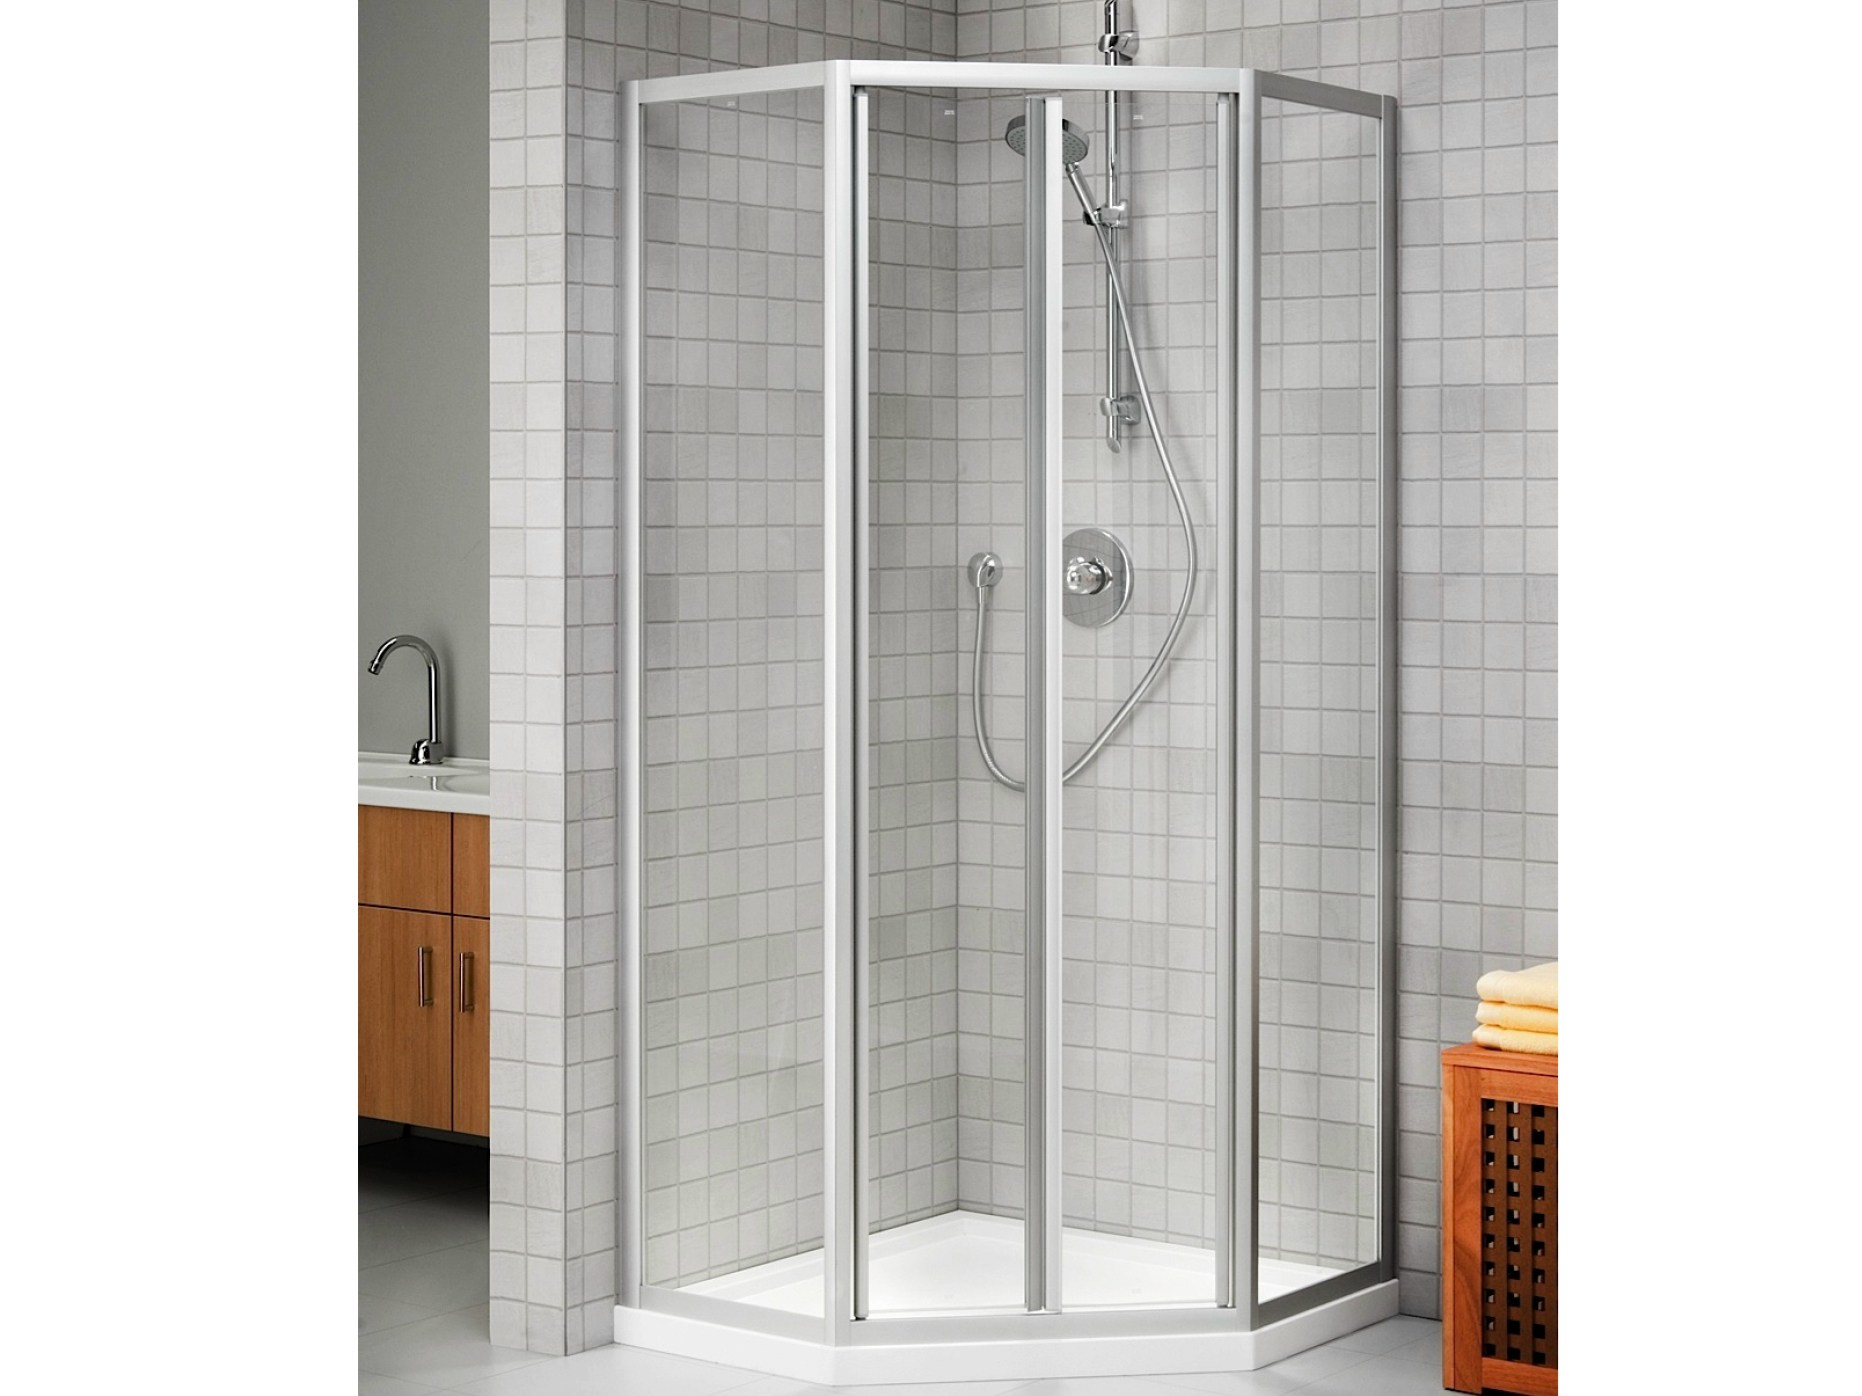 cabine de douche d 39 angle en cristal prima glass 2000. Black Bedroom Furniture Sets. Home Design Ideas